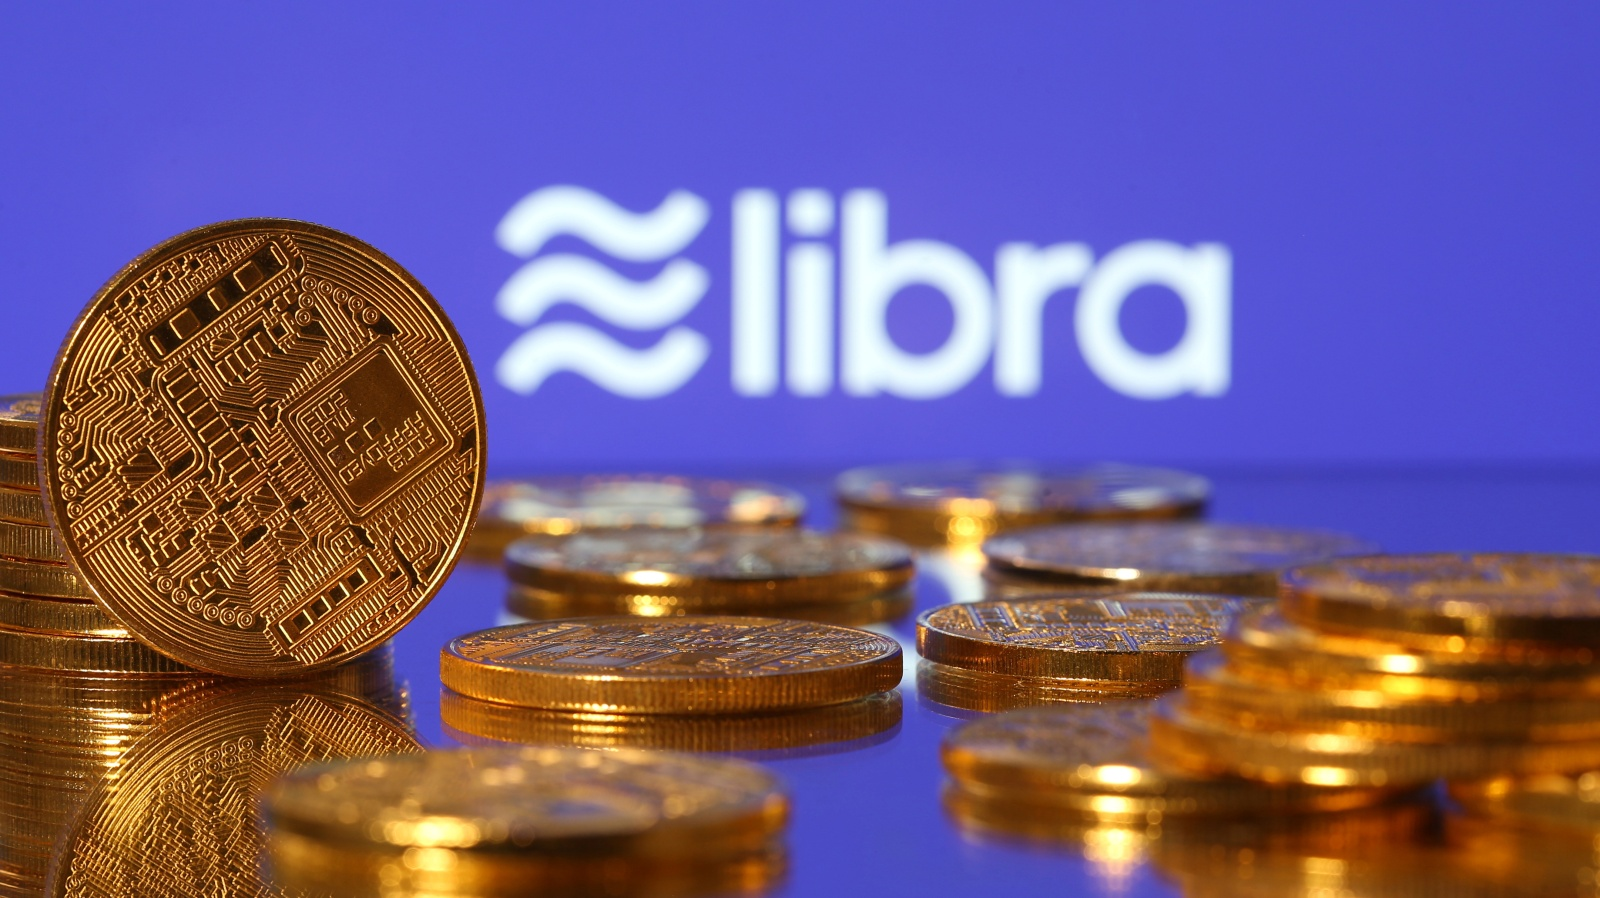 qz.com - Christian Catalini - The best thing about Libra is often overlooked-and its creators explain why